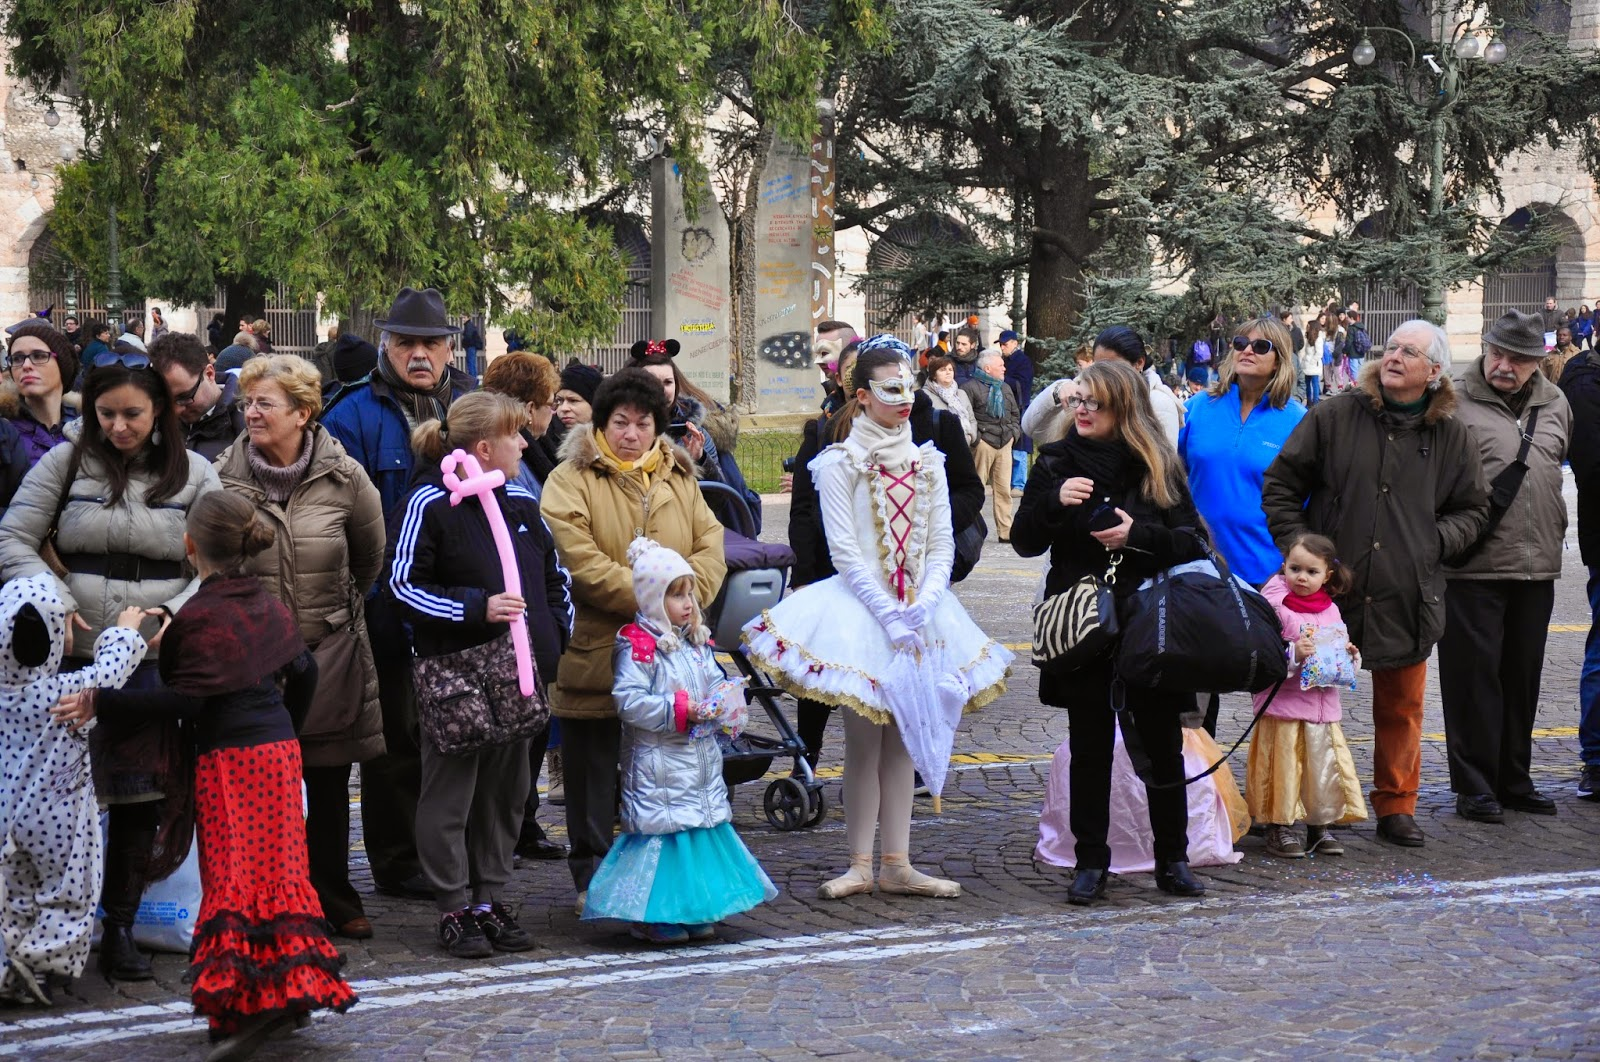 A ballerina girl and dressed up kids wait for the parade to start at Verona Carnival